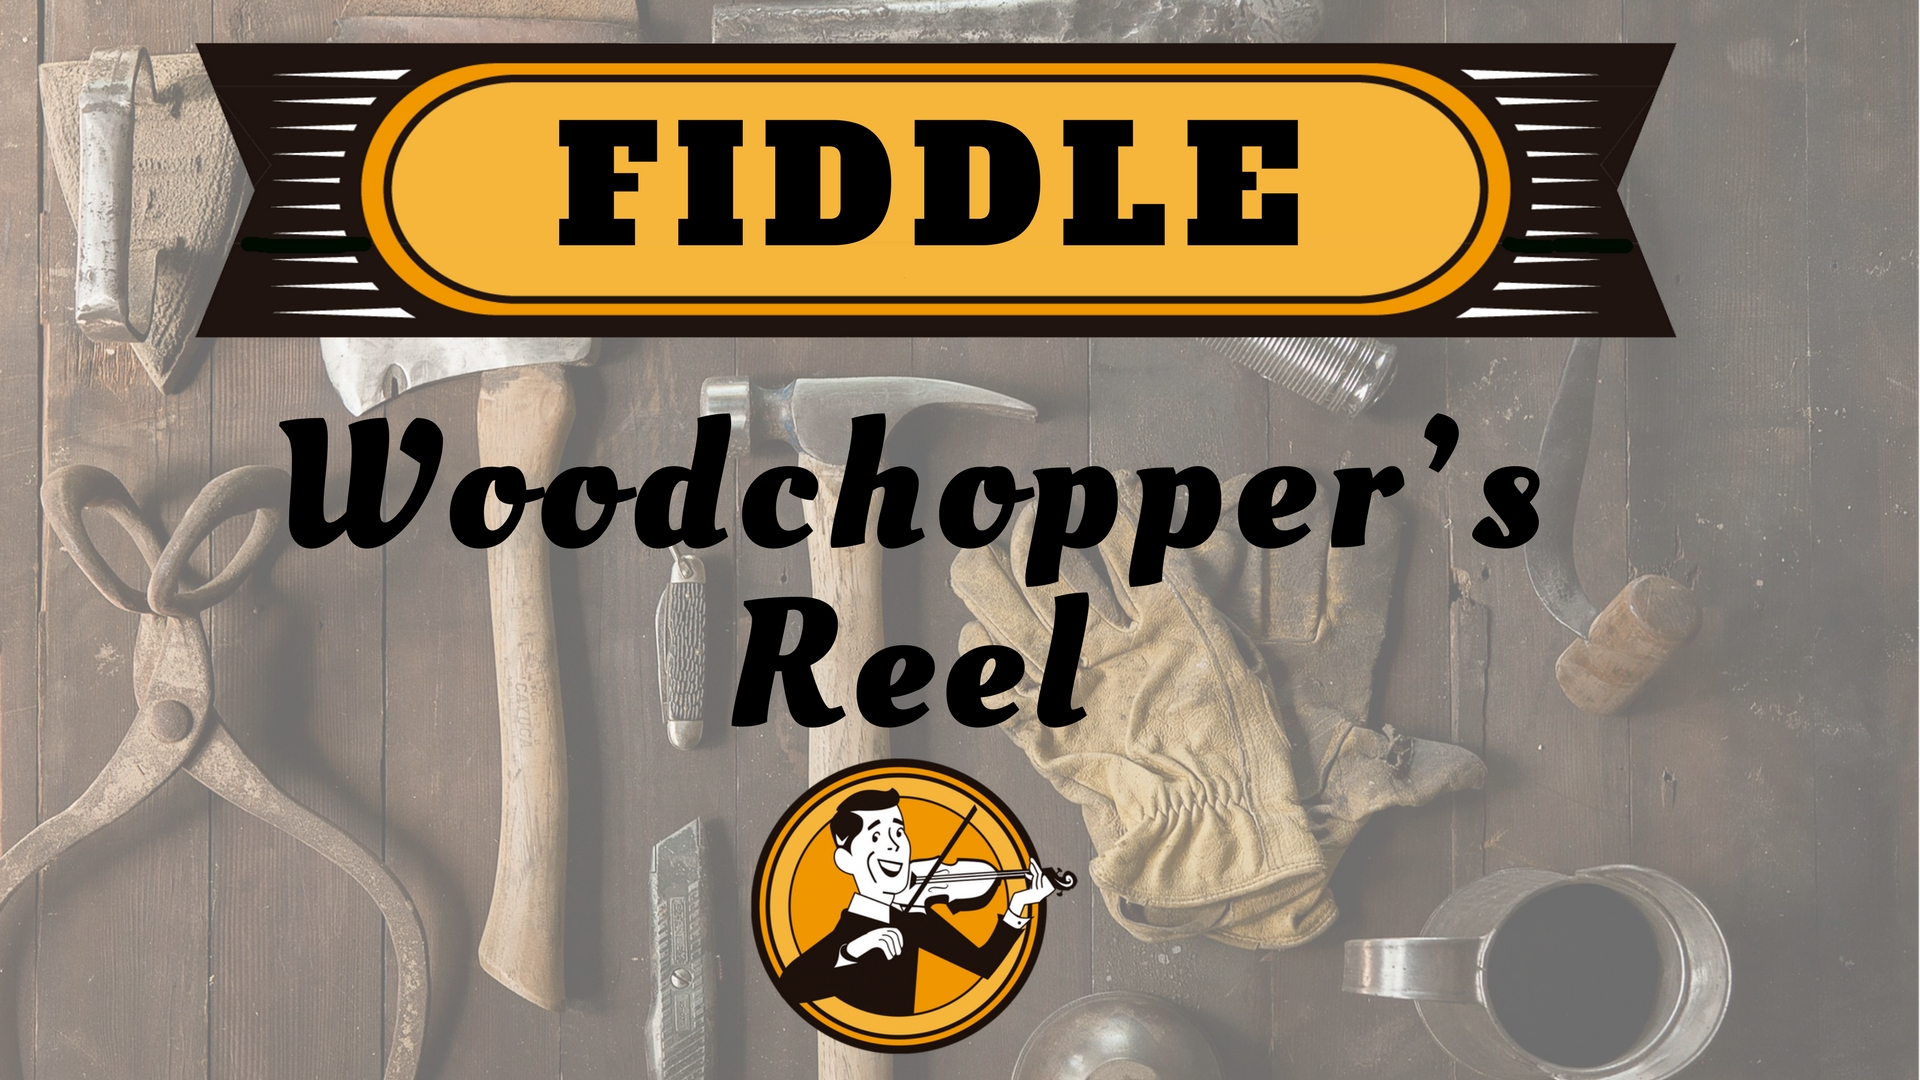 Fiddle woodchopper